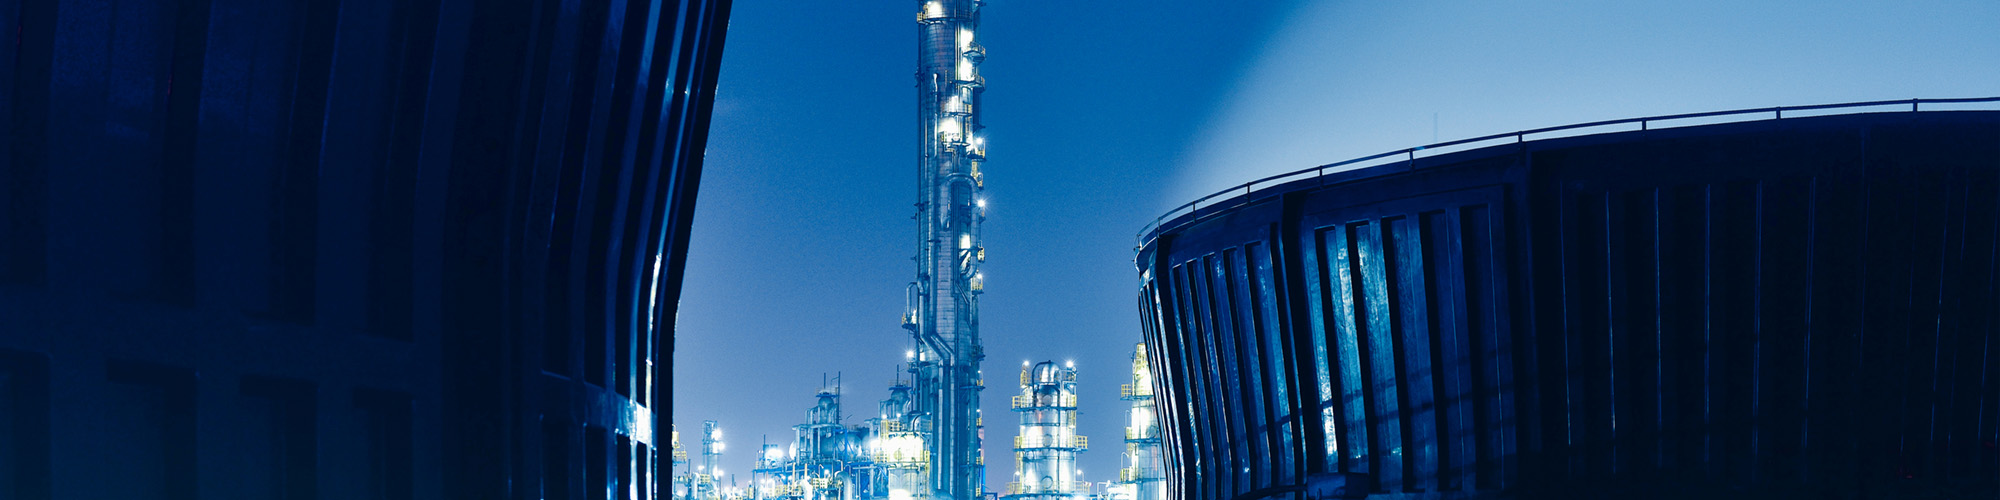 Gas analyzers and monitoring systems for Compliance measurements - Monitoring and Testing - Air Monitoring and Testing